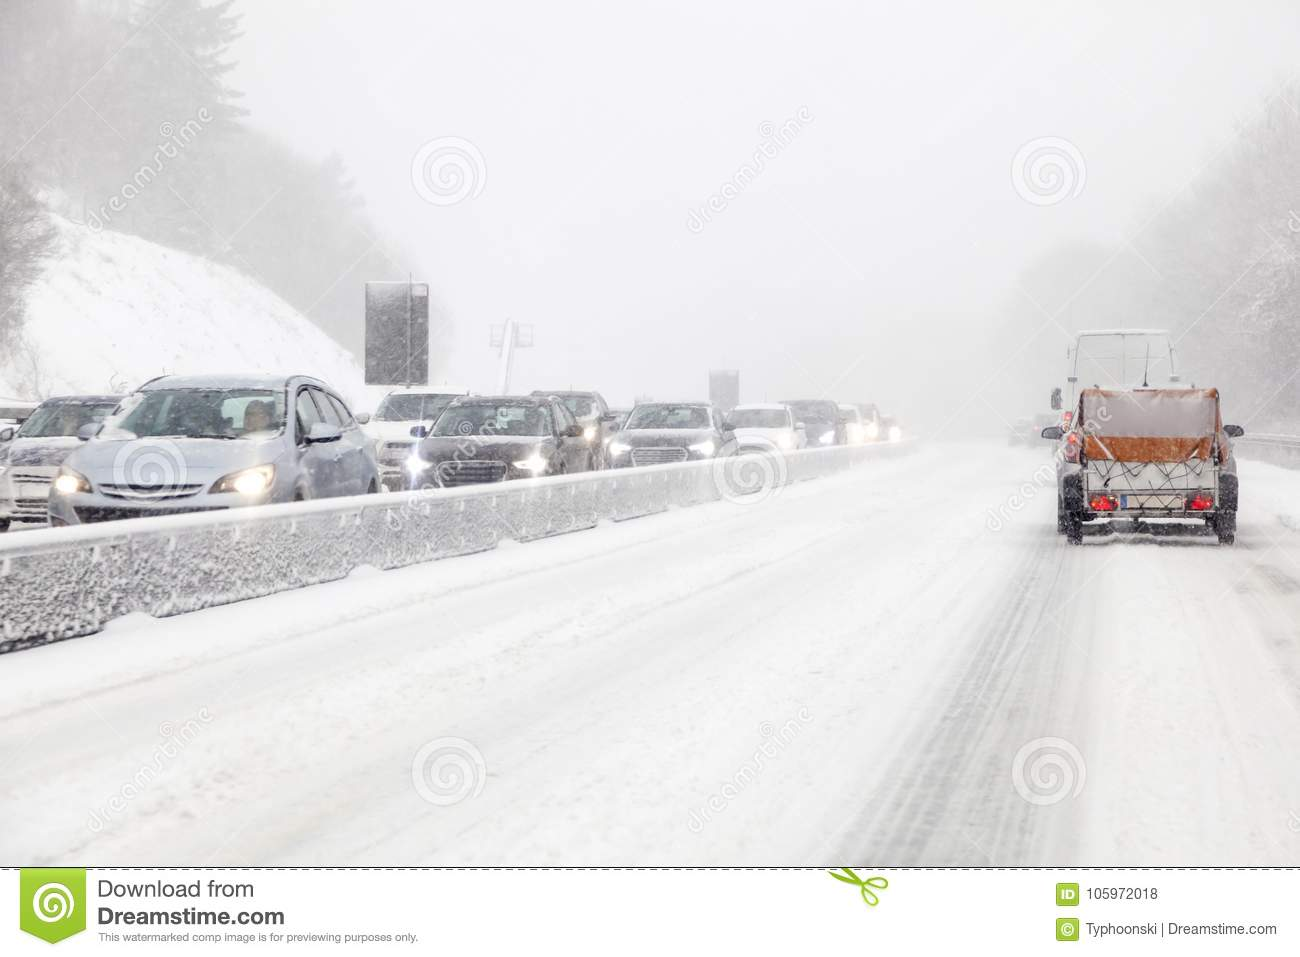 Cars on the highway during a blizzard